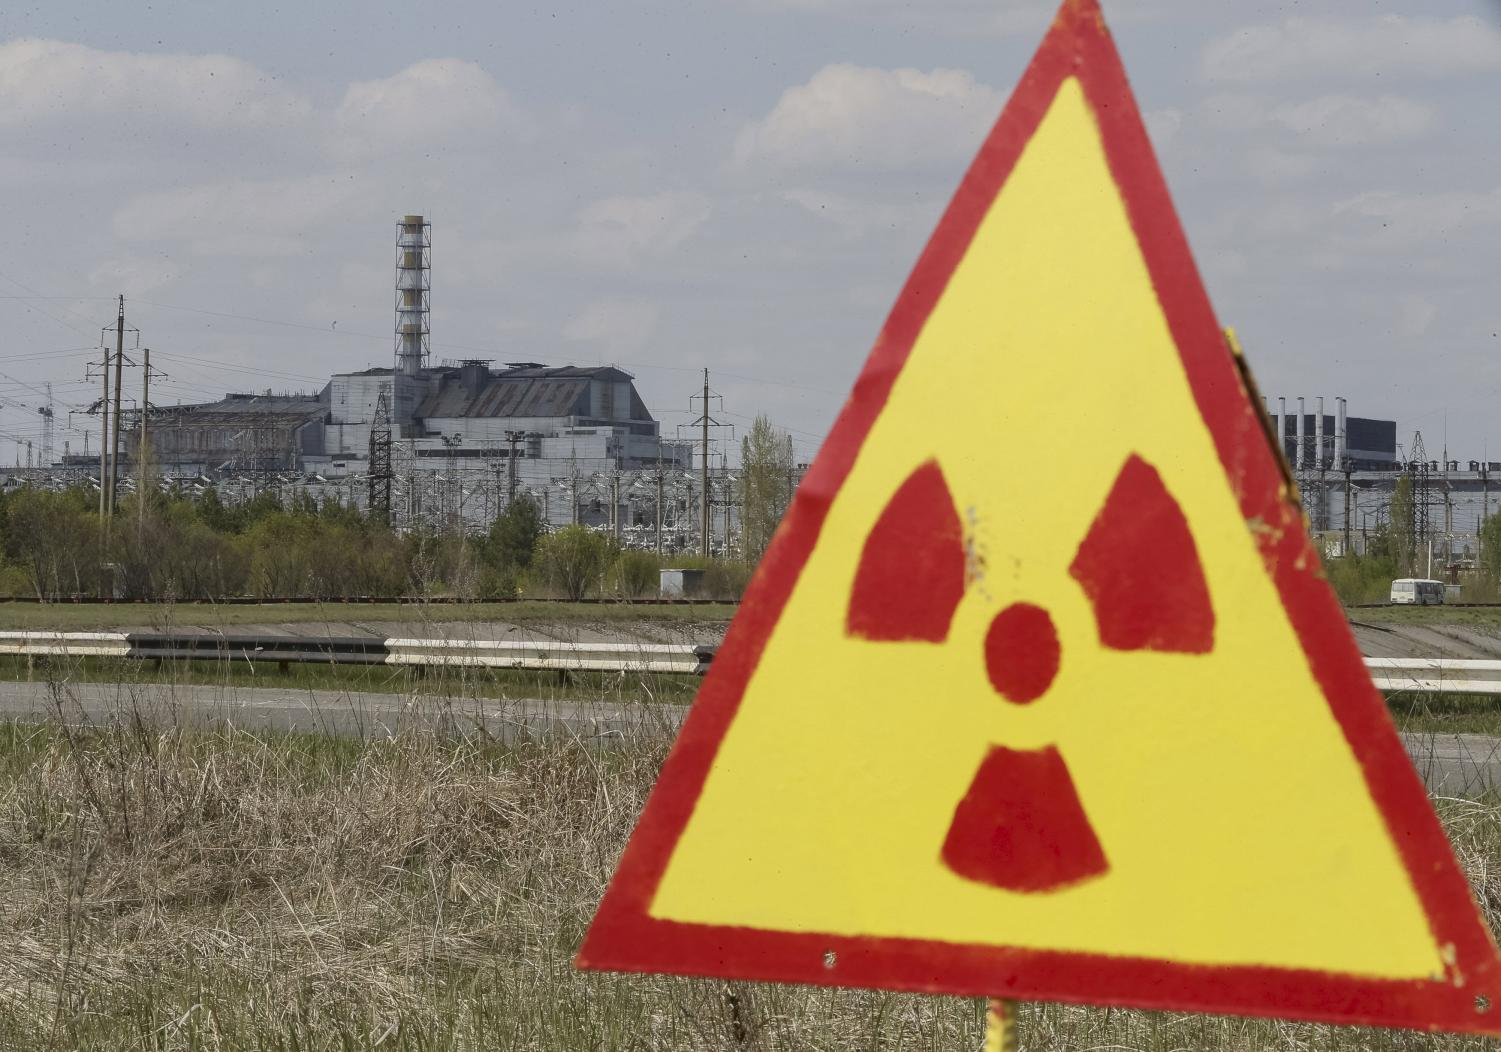 2%3A+Chernobyl%2C+Ukraine%3A+This+is+the+most+well+known+nuclear+incident.+Chernobyl+is+still+very+contaminated%2C+leaving+6+million+people+being+exposed+to+radioation%2C+leading+to+a+death+range+of+4000+to+93%2C000+Deaths.+This+accident+released+100+times+more+radiation+than+Nagasaki+and+Hiroshima+COMBINED.+Now+I+can+see+why+this+is+on+the+%232+Spot.